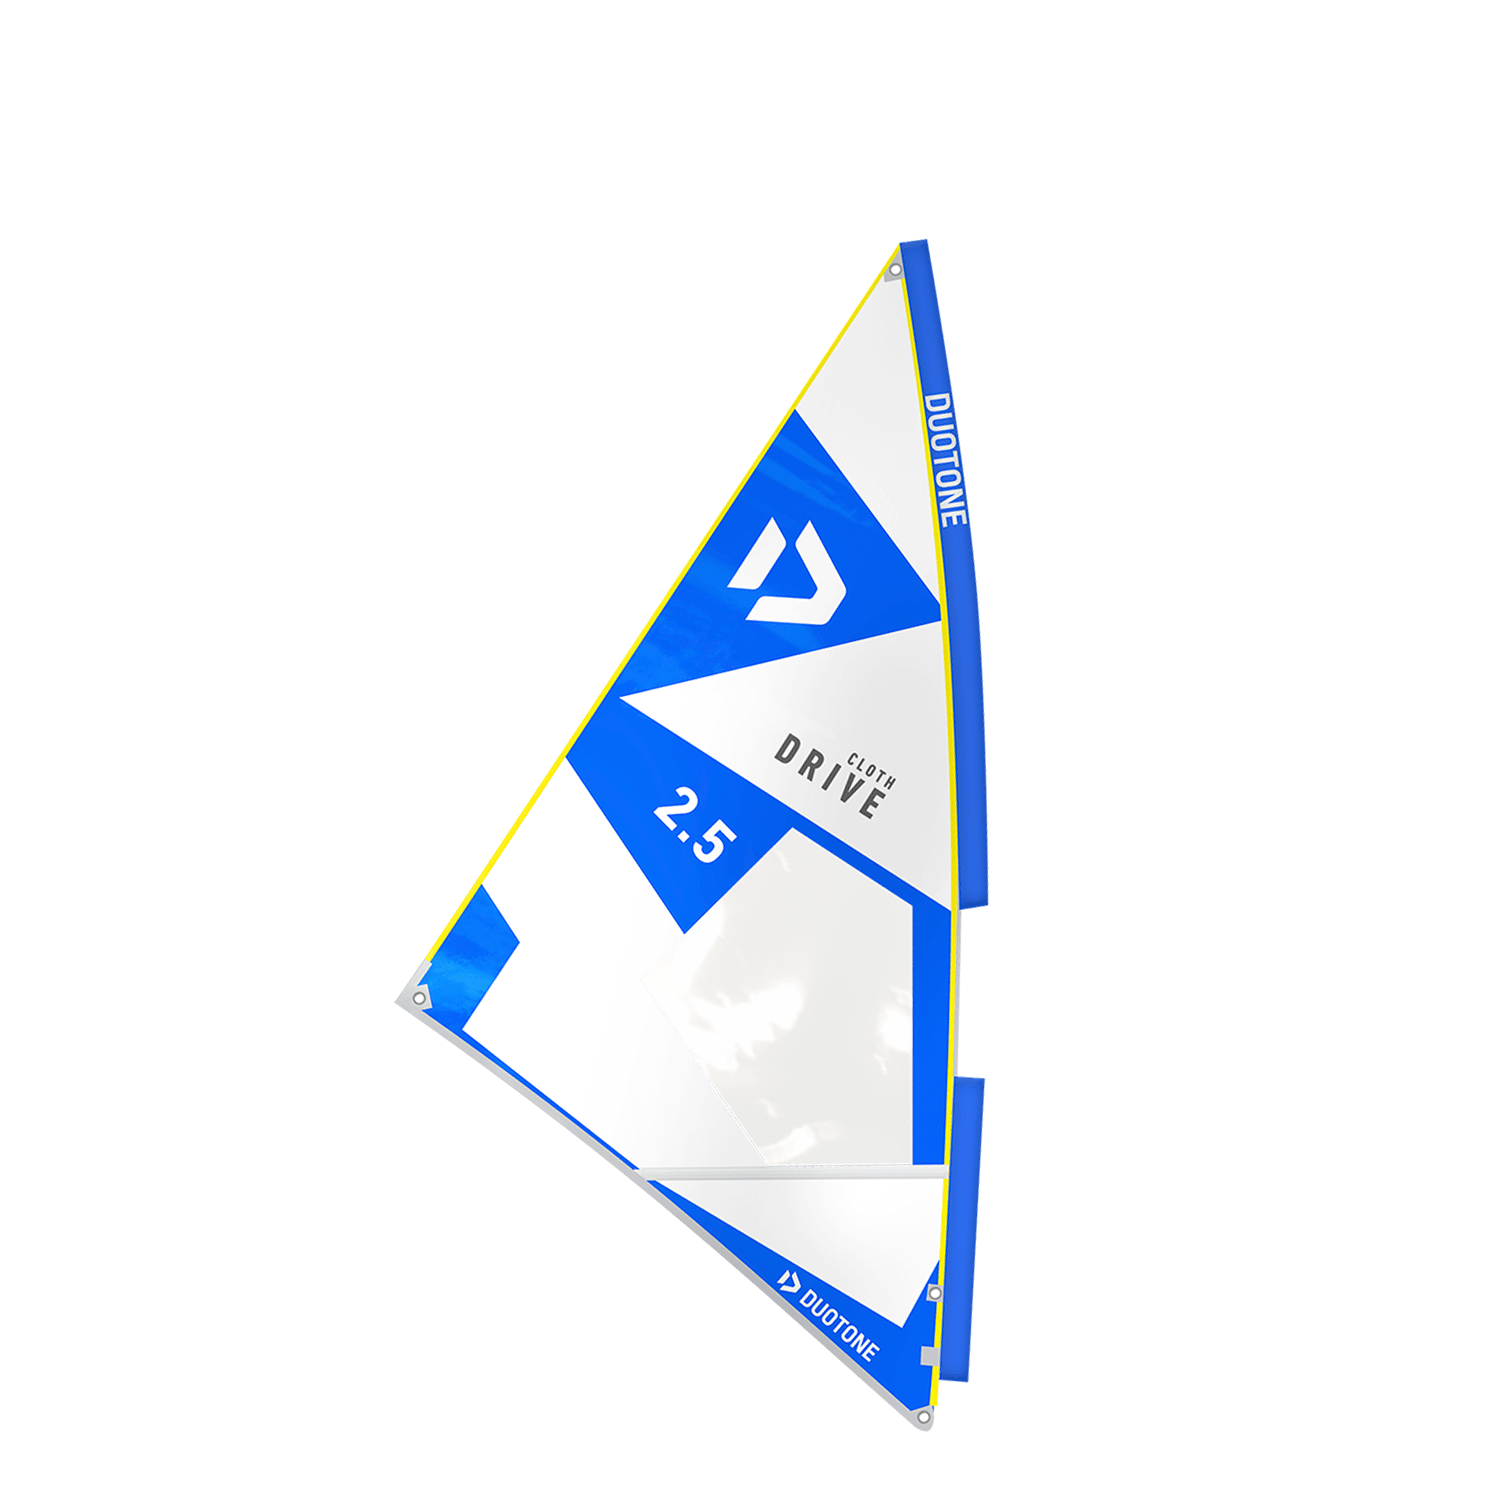 DT19_Sails_14900-1219_DriveCloth-C02-2-5.png